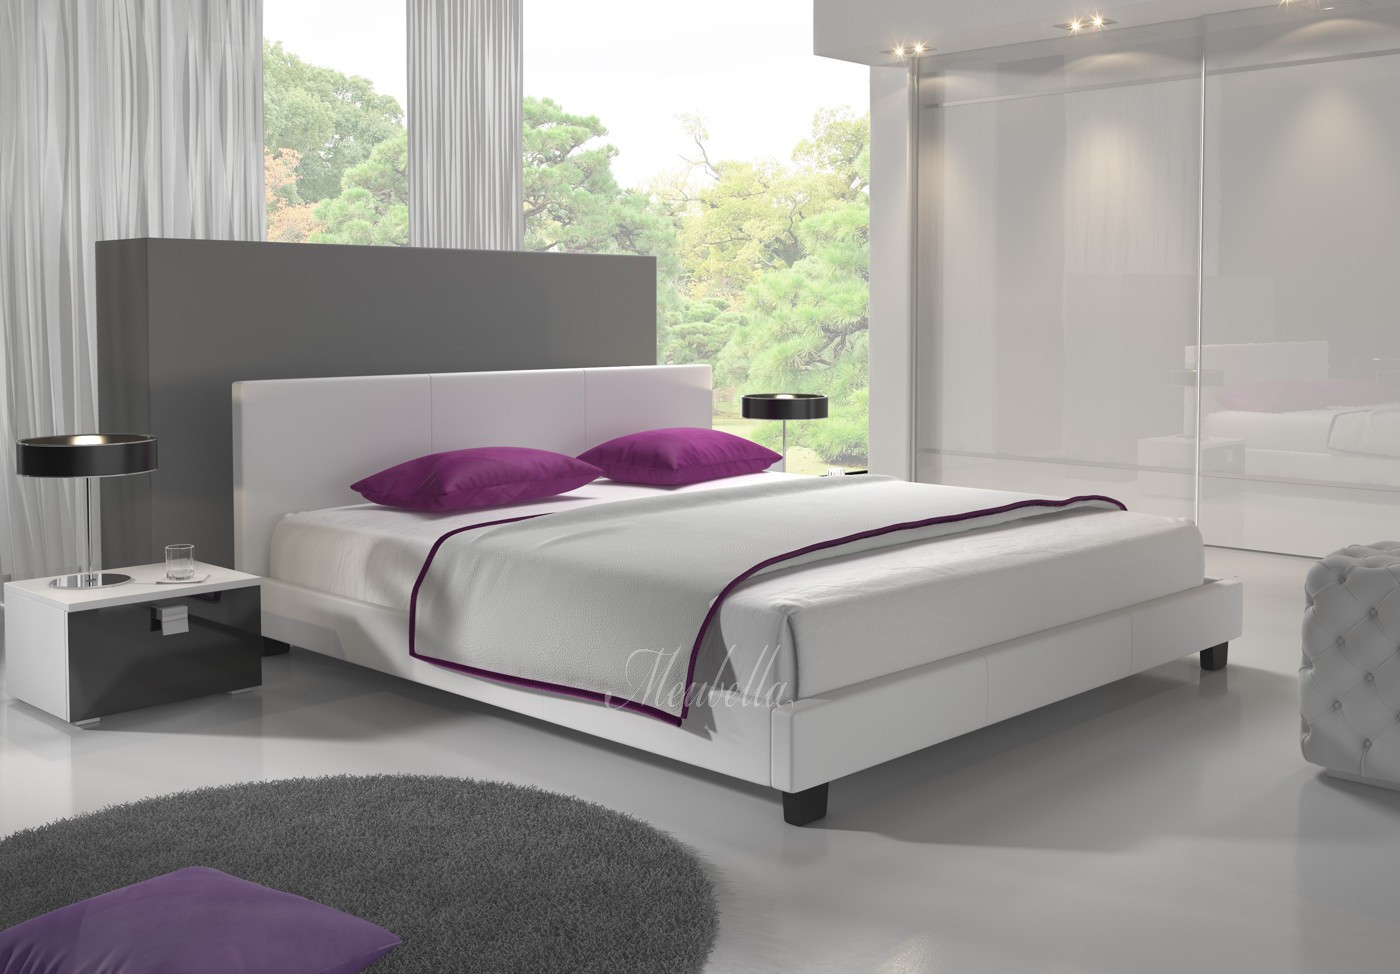 Tweepersoonsbed george wit 140x200 cm actie 140 x for Complete slaapkamers outlet